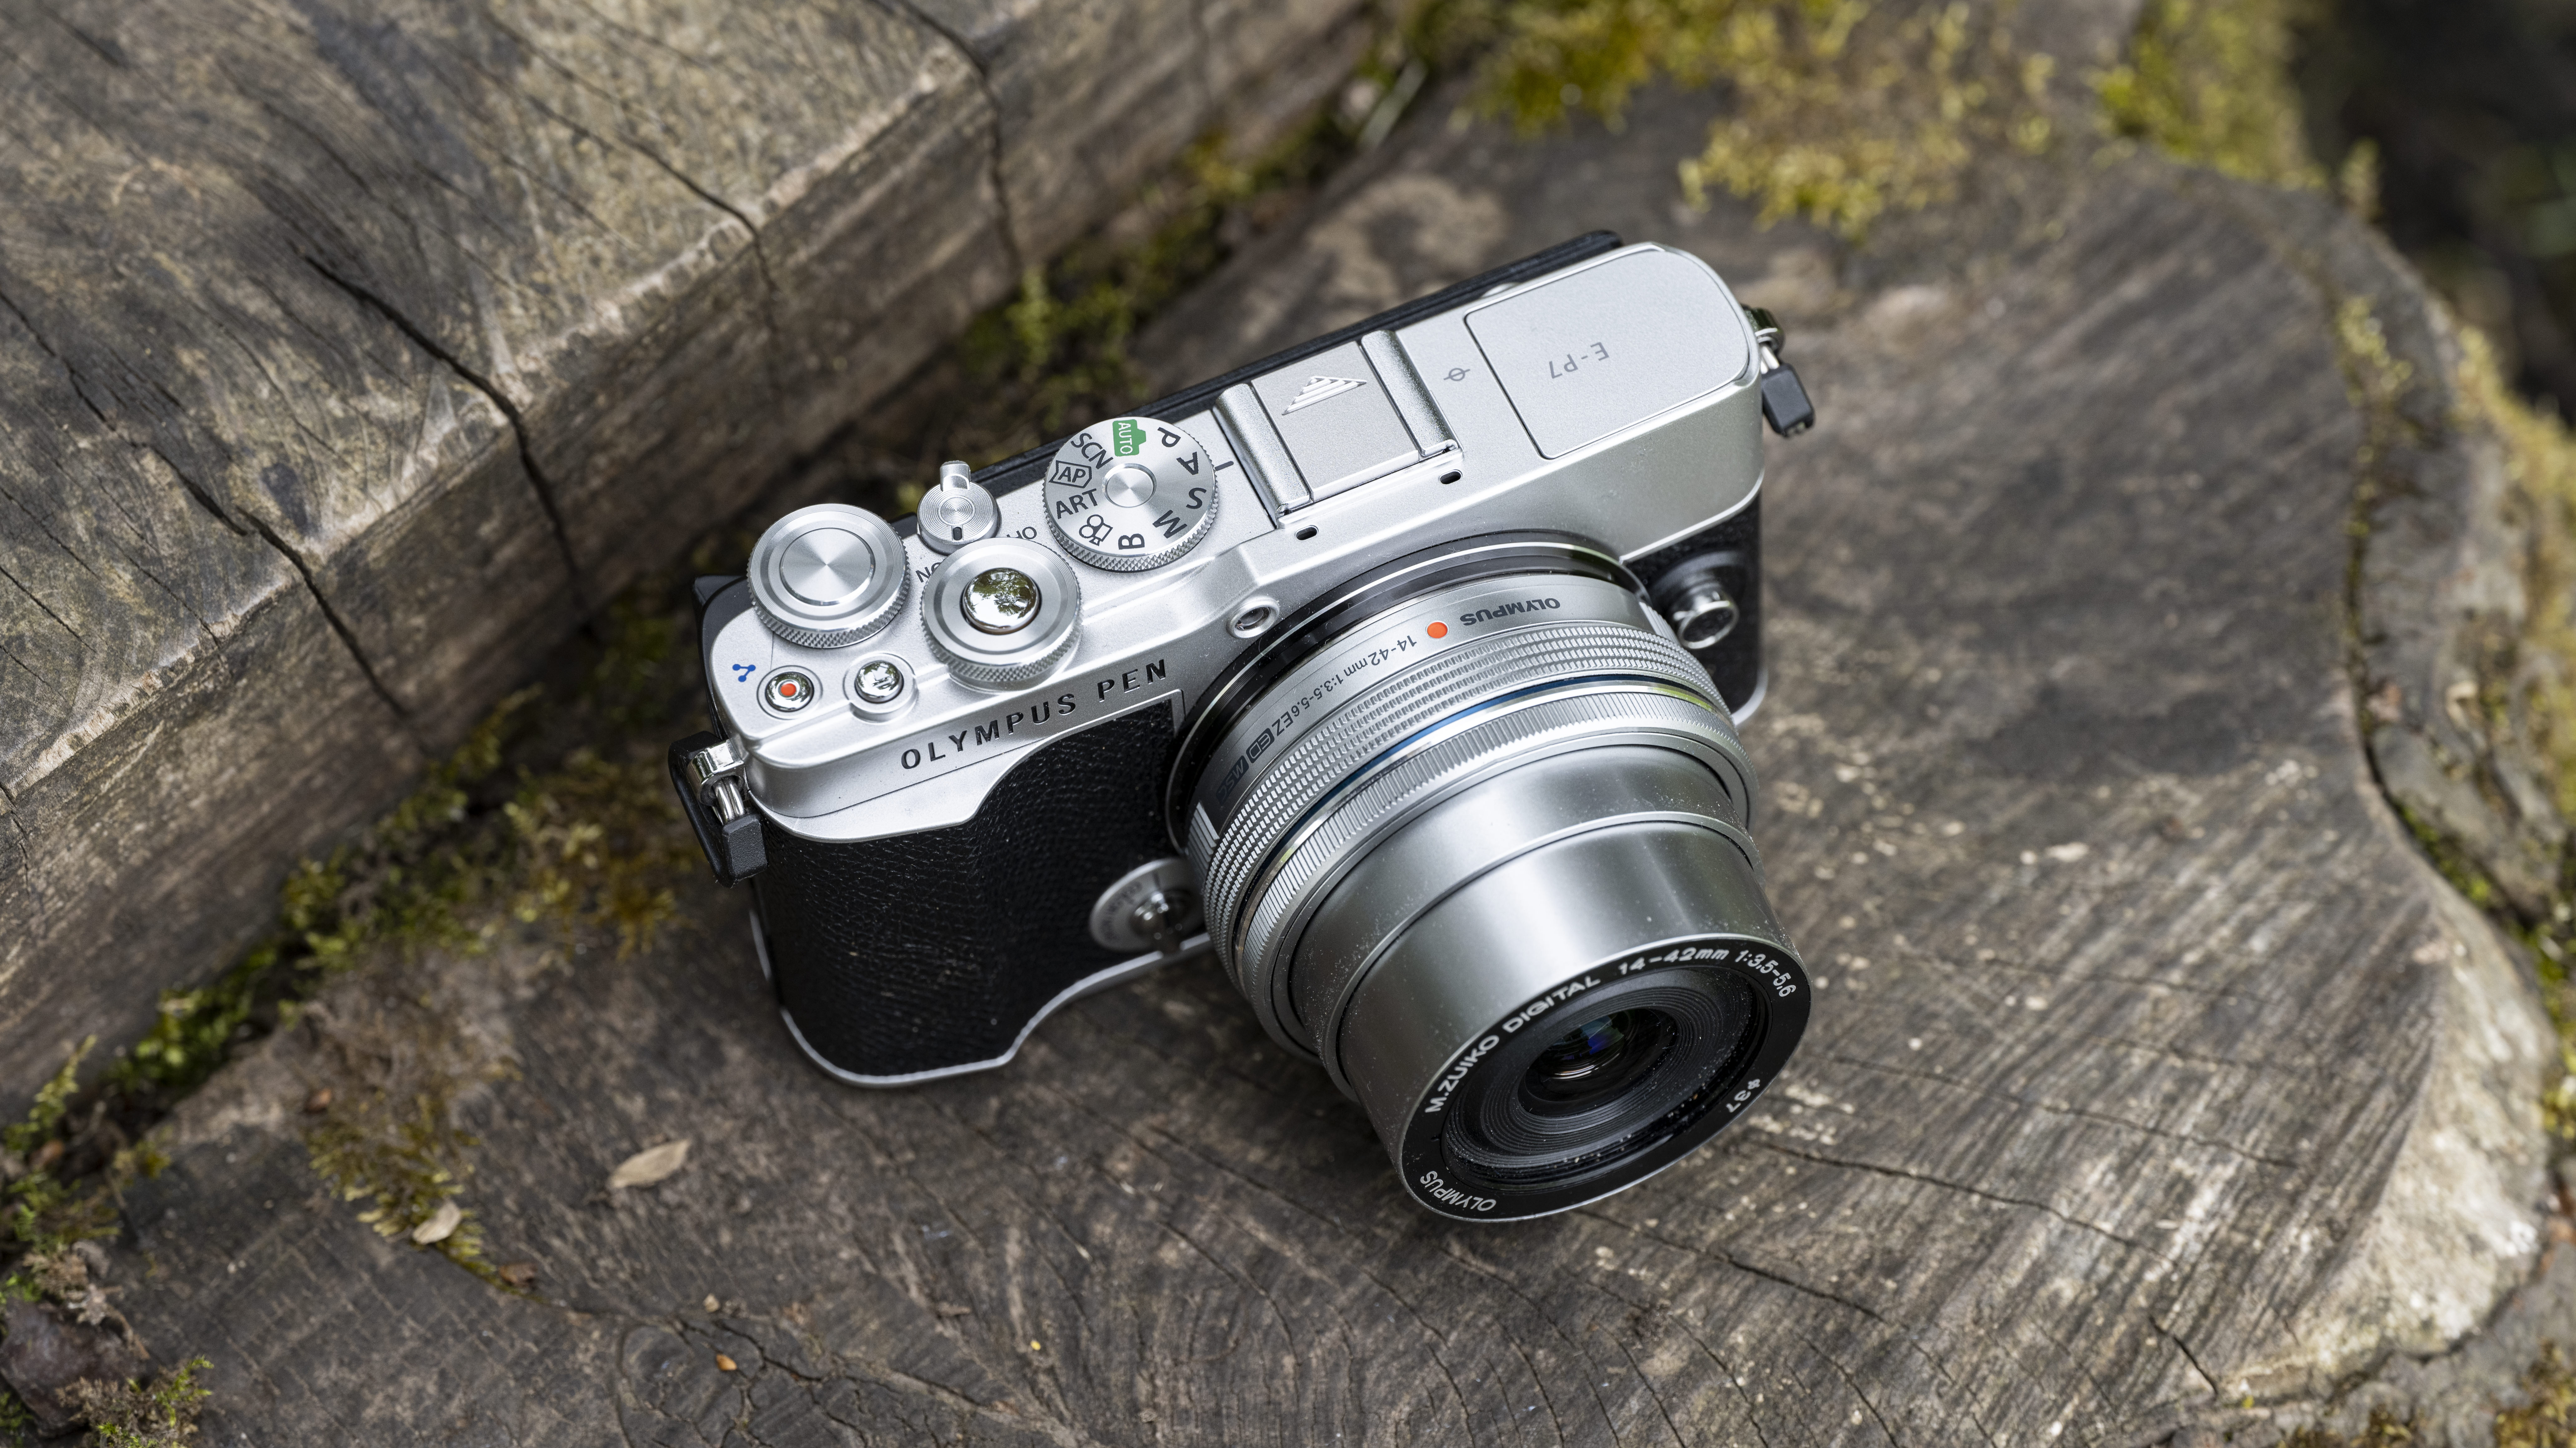 The controls and 14-42mm zoom of the Olympus E-P7